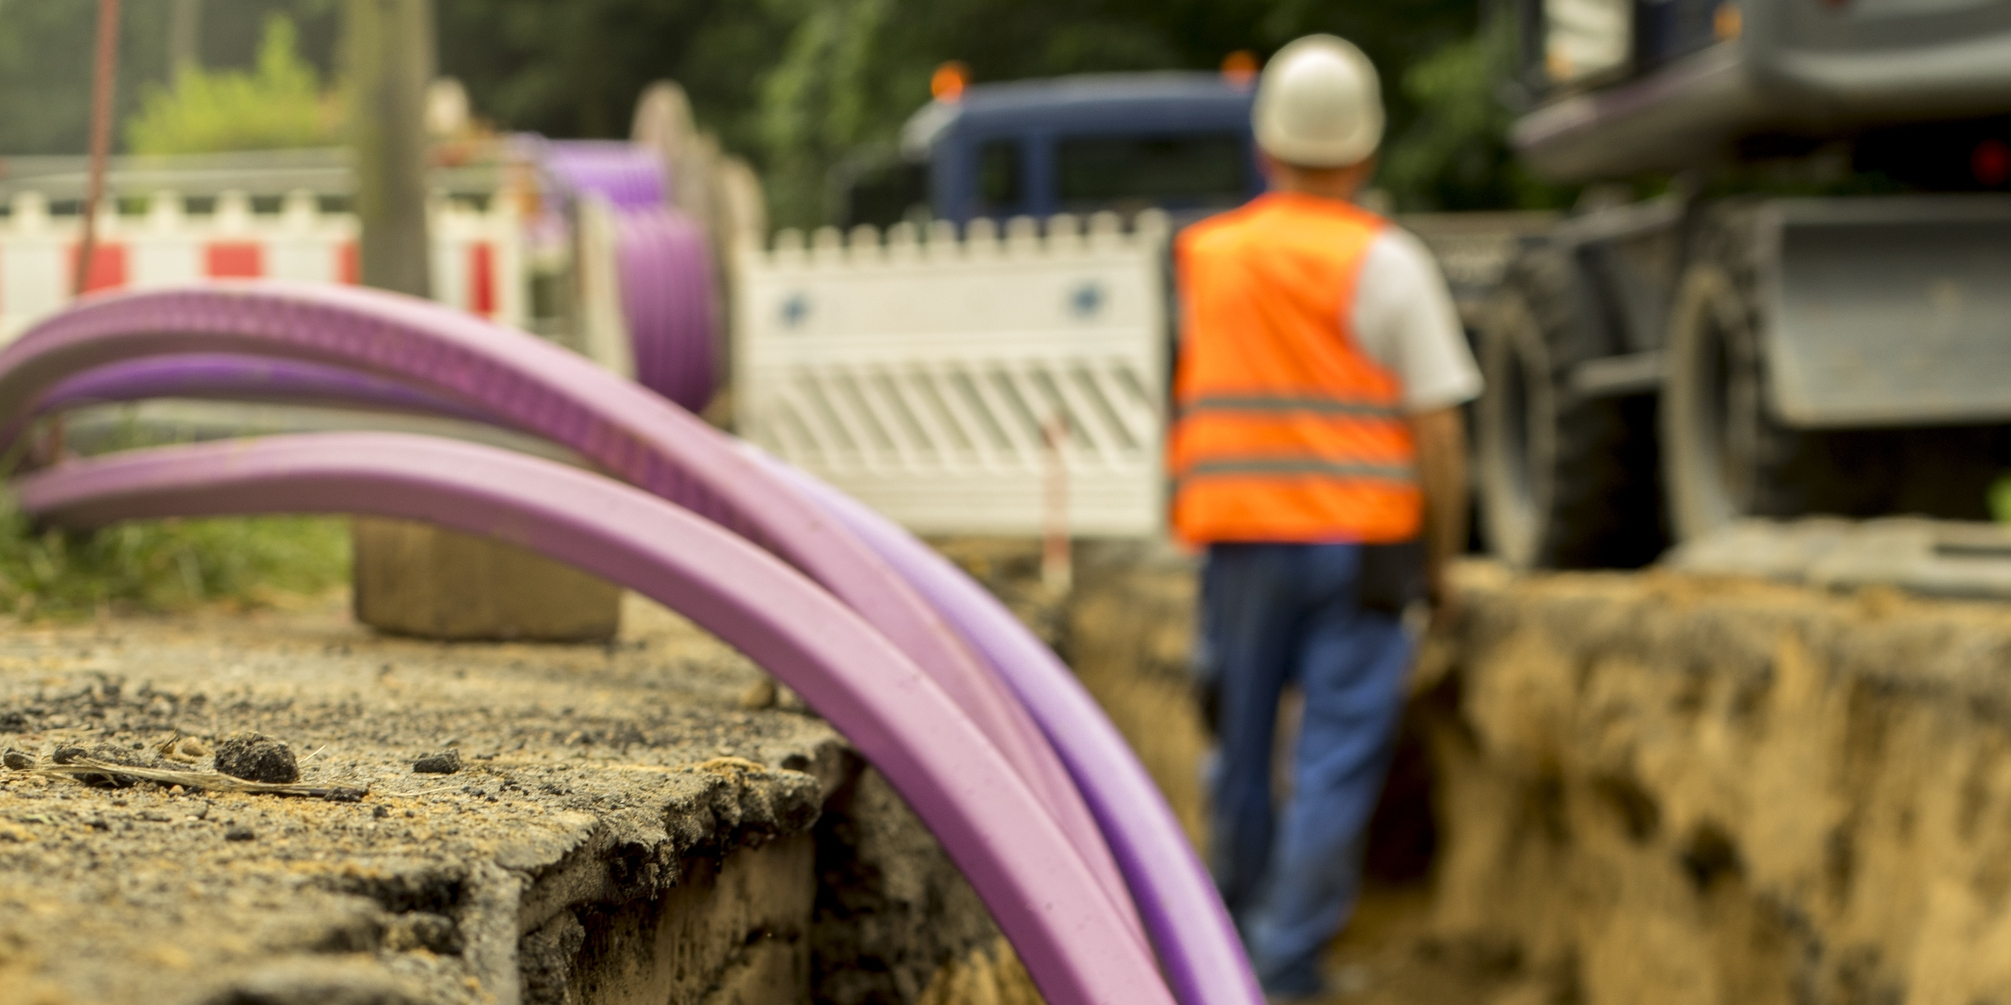 Image: A construction worker stands in a waist-high ditch. Purple cables are in the foreground.